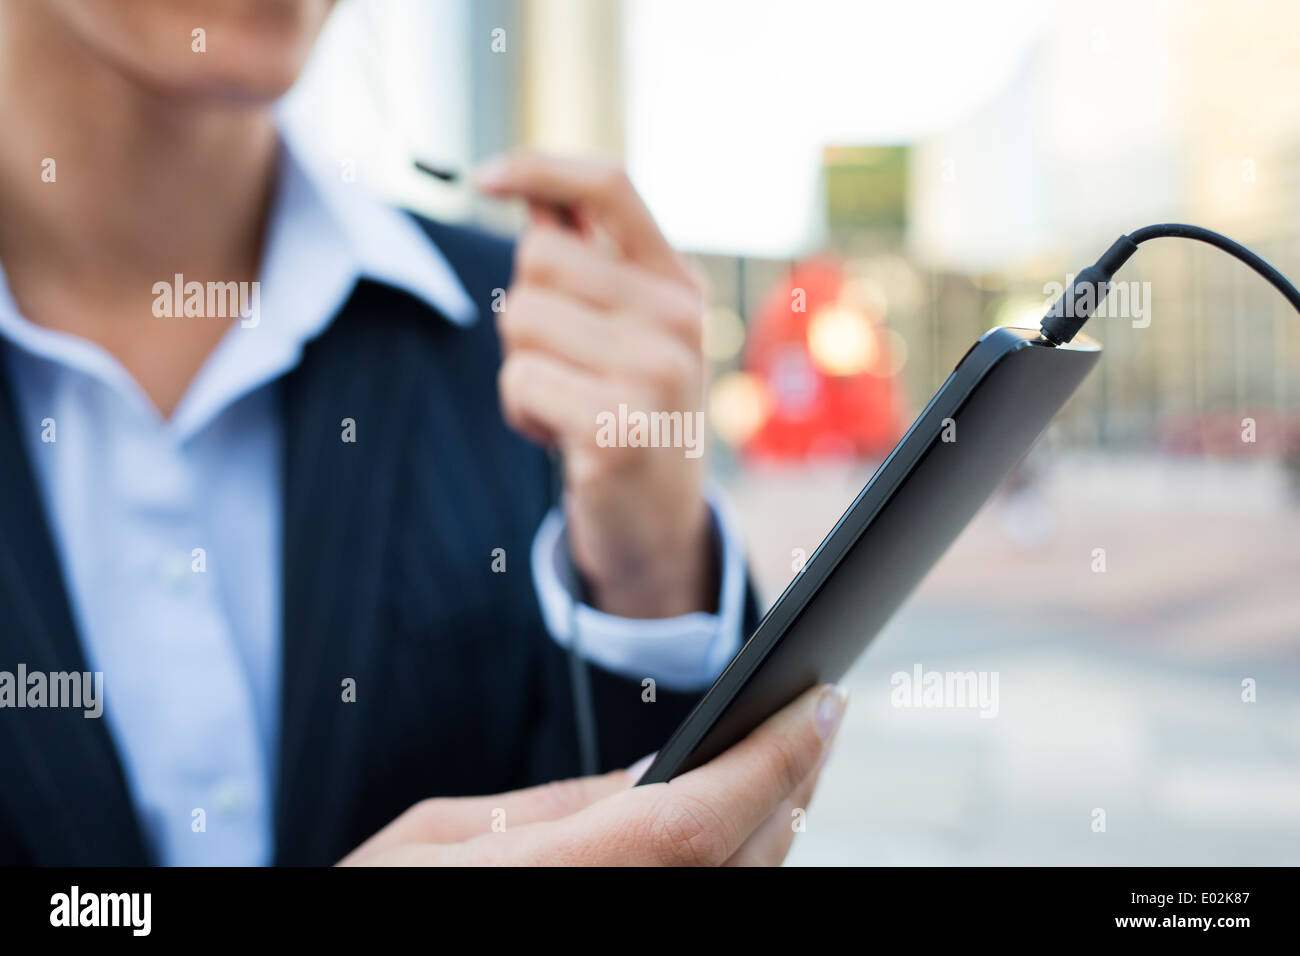 Female Mobile phone hand outdoor Building Stock Photo